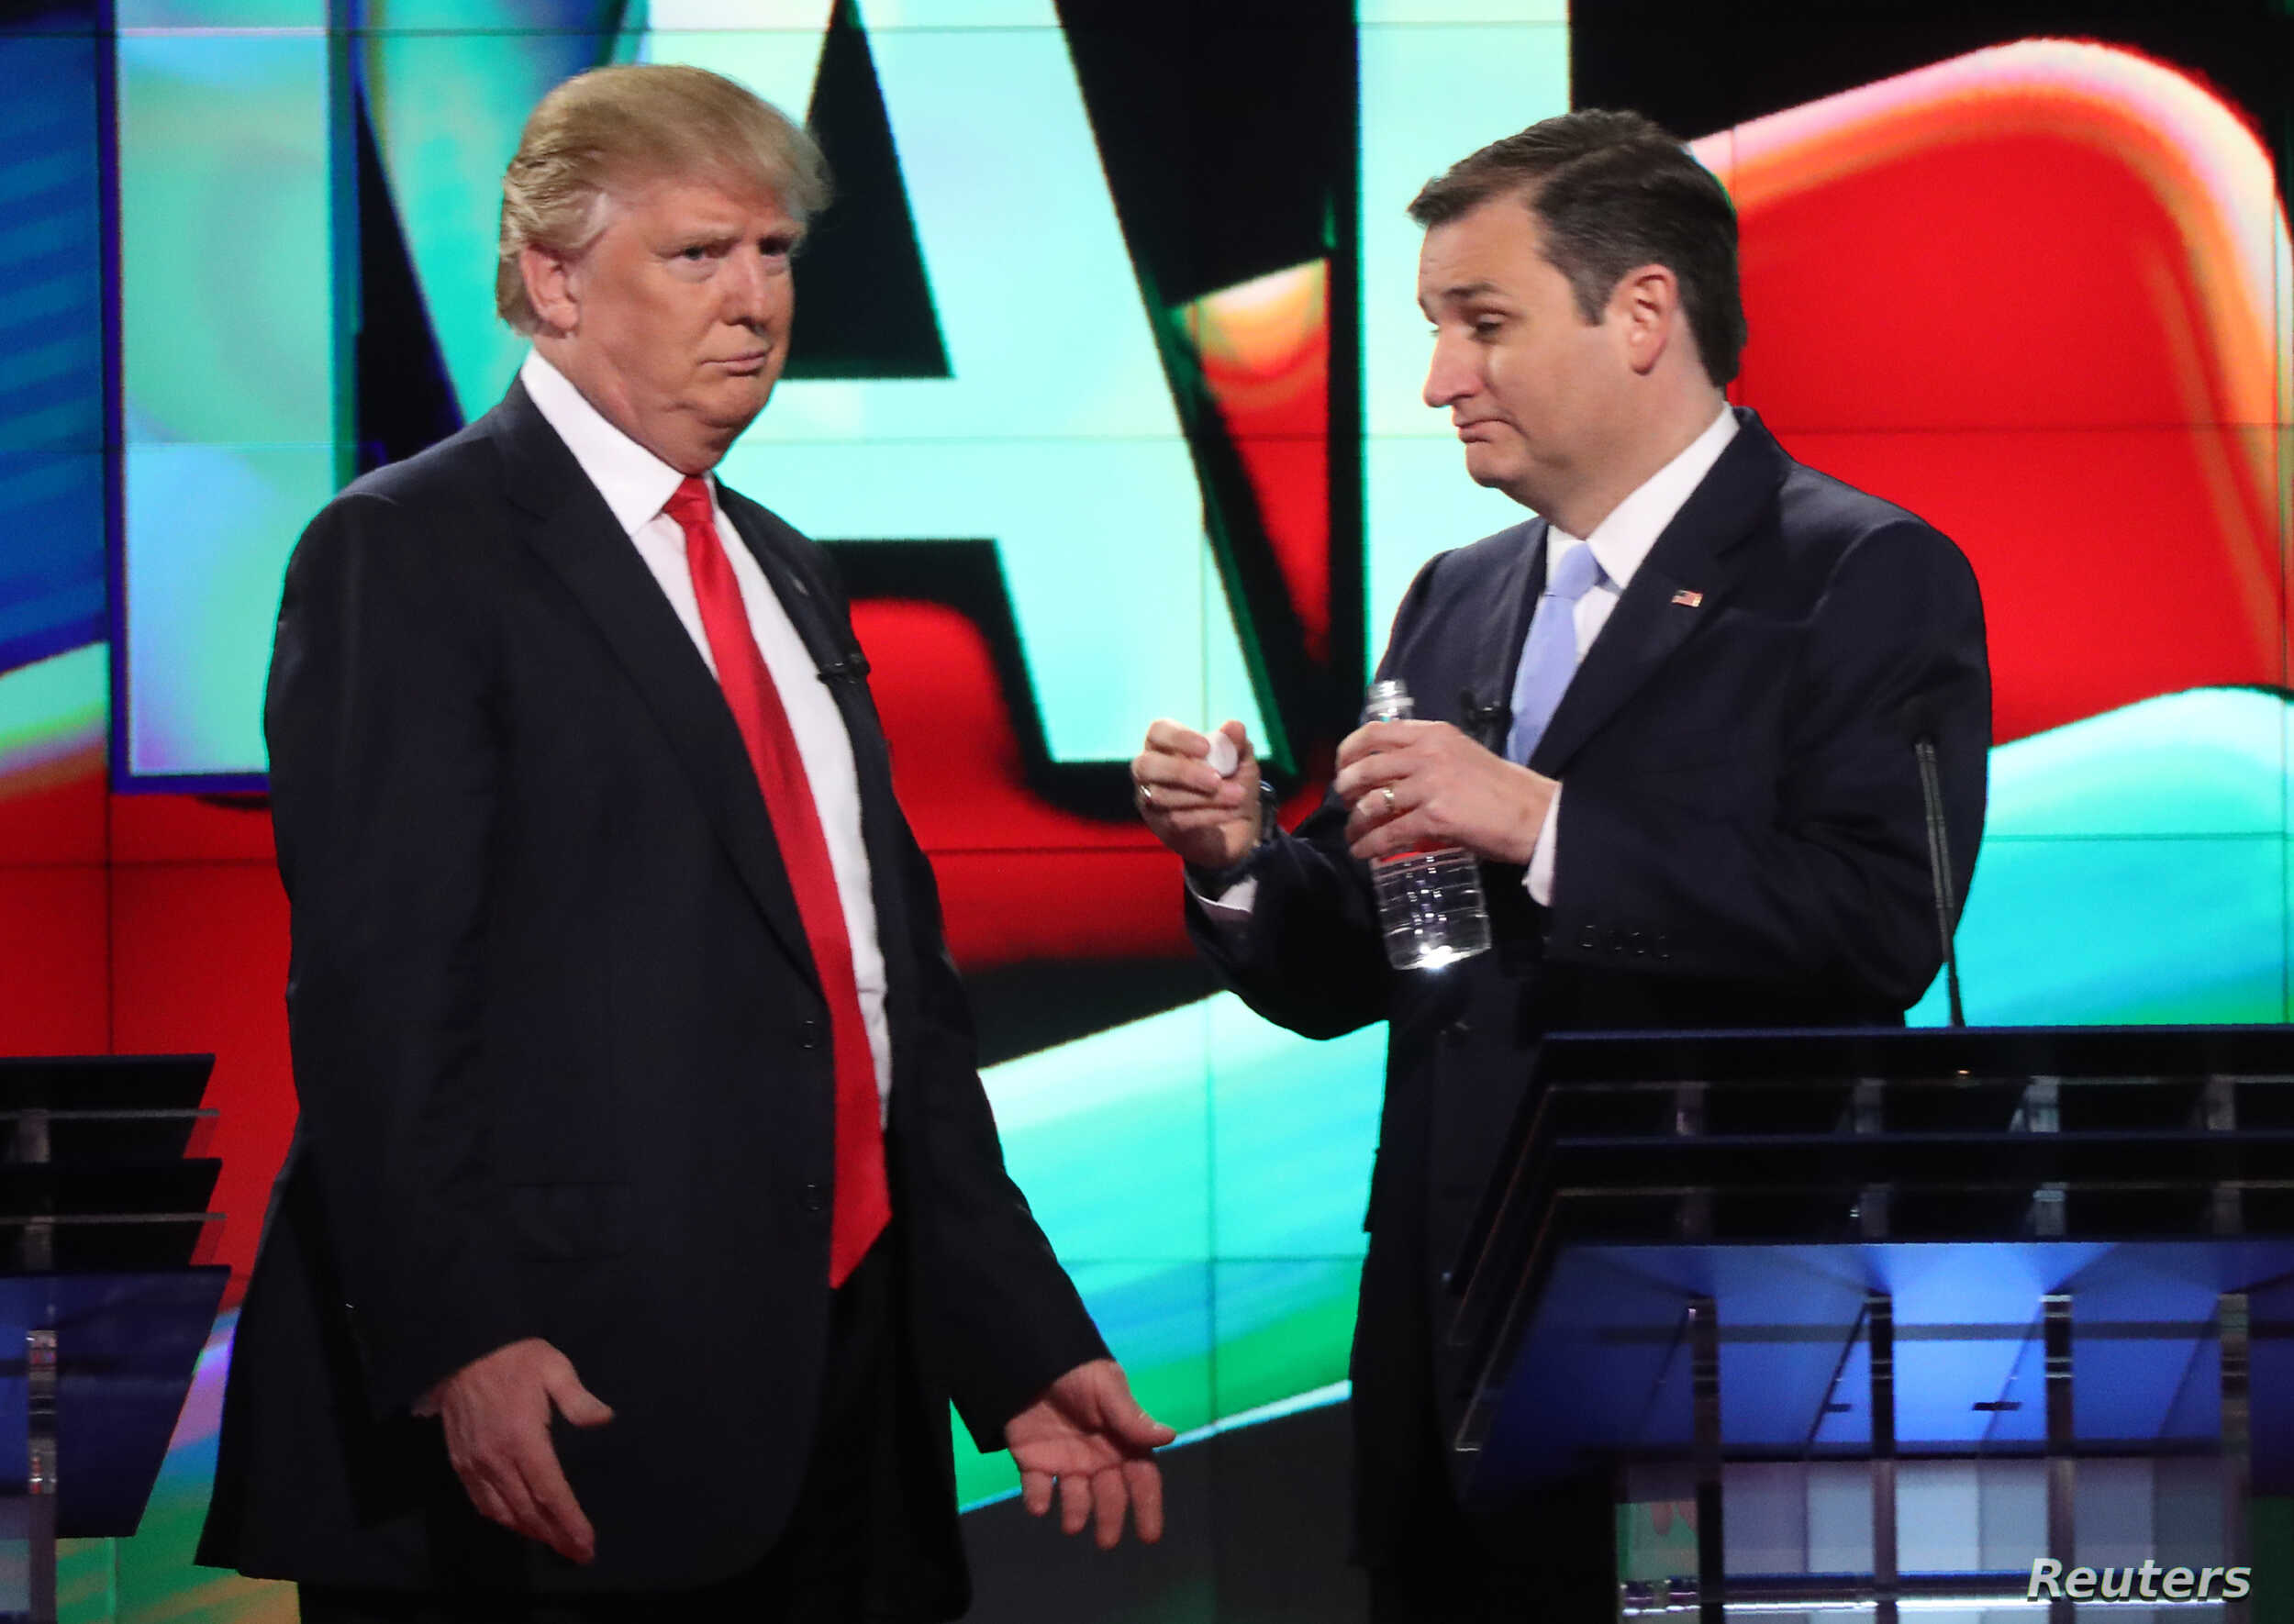 Republican U.S. presidential candidate Donald Trump (L) talks with rival Ted Cruz during a commercial break in the midst of the Republican U.S. presidential candidates debate sponsored by CNN at the University of Miami in Miami, Florida, March 10, 20